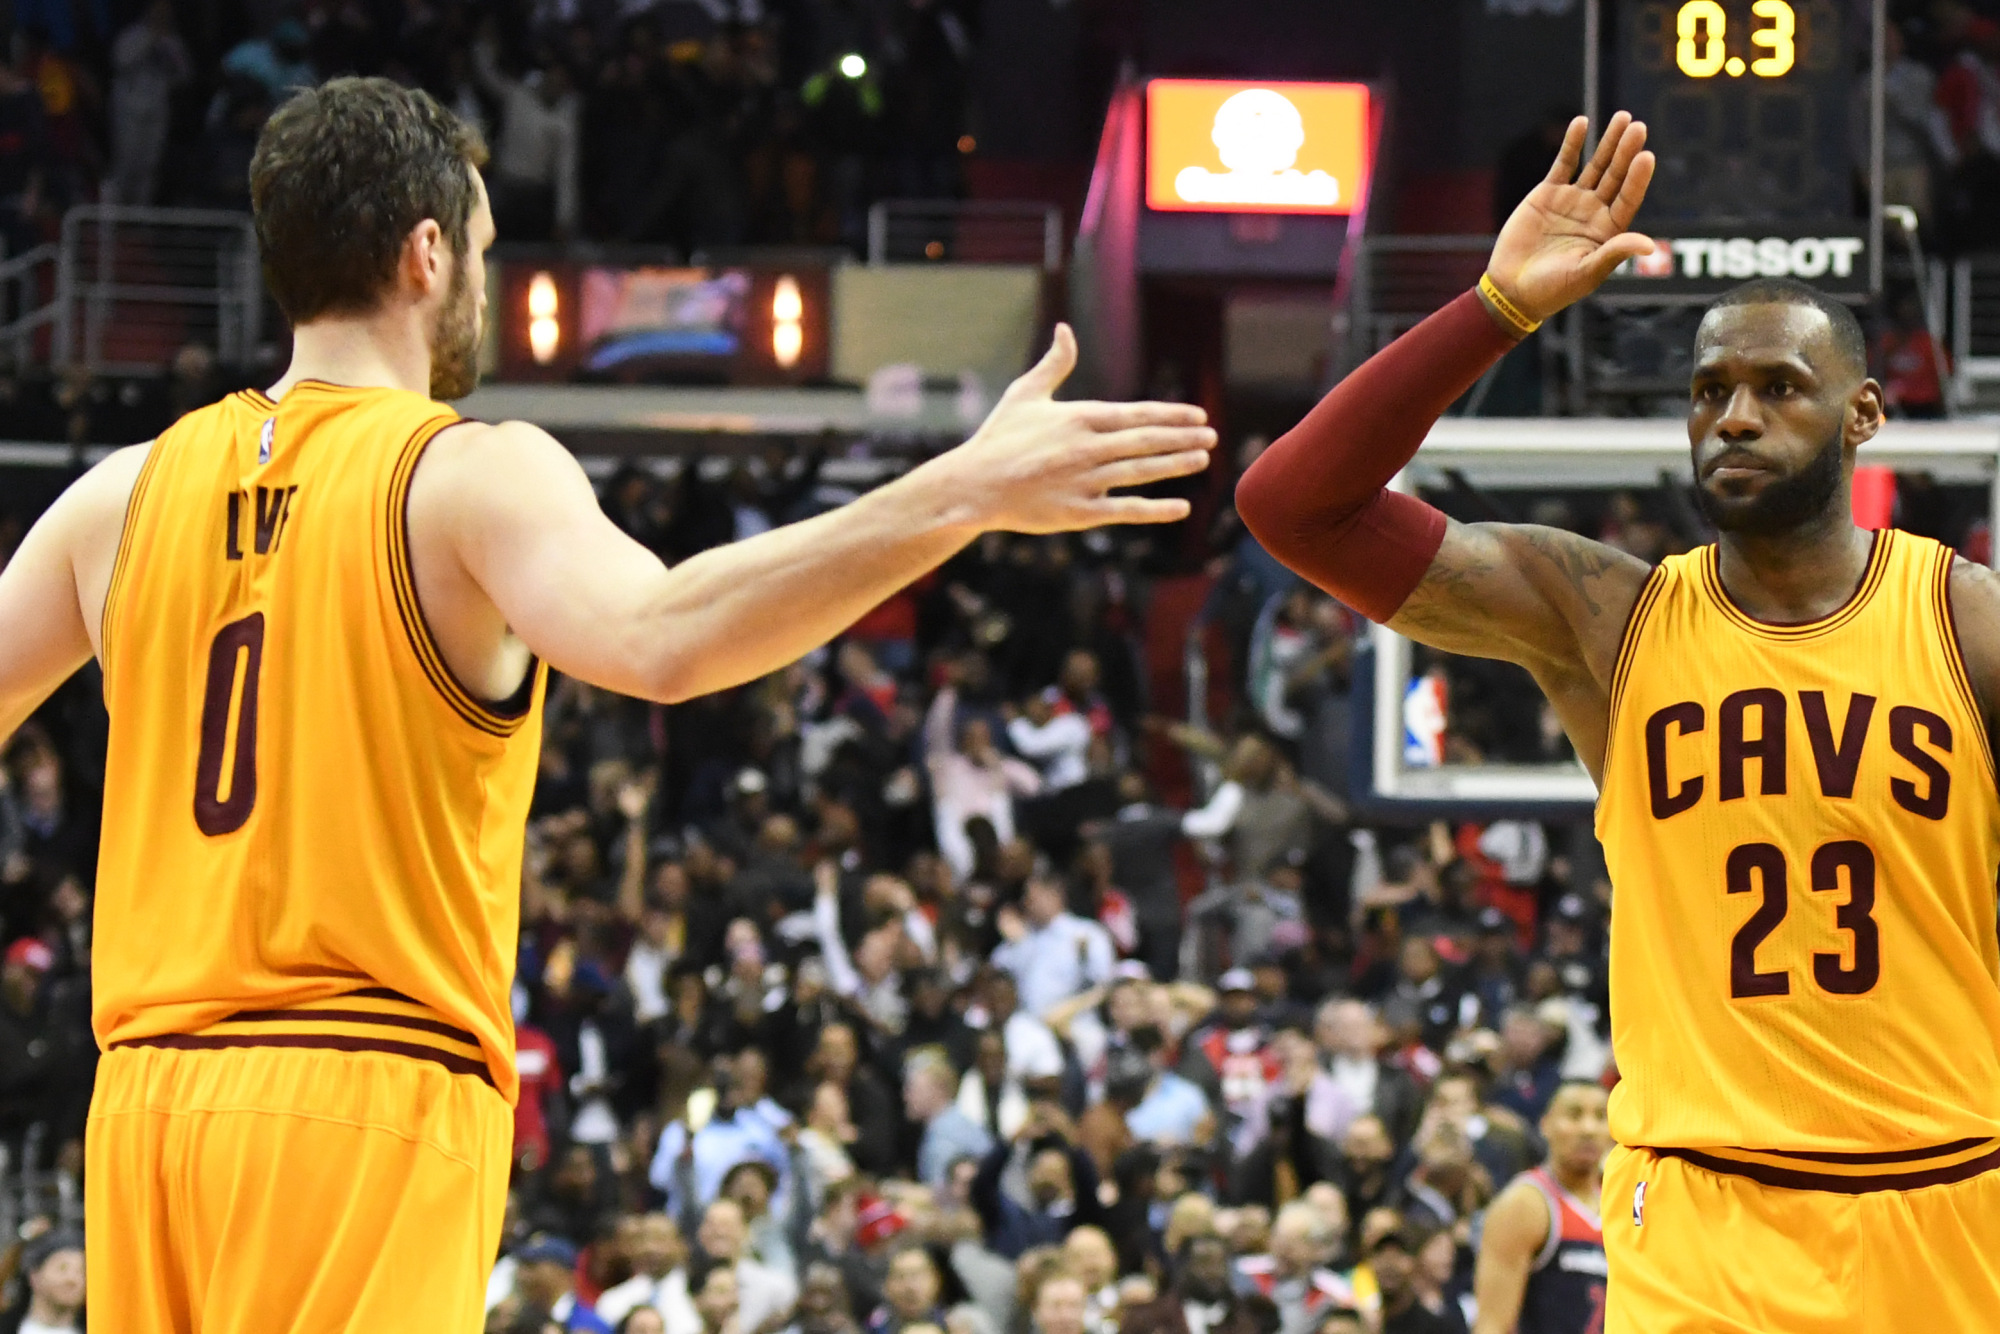 Feb 6, 2017; Washington, DC, USA; Cleveland Cavaliers forward LeBron James (23) high fives forward Kevin Love (0) after making a game tying three point shot during the fourth quarter against the Washington Wizards  at Verizon Center. Cleveland Cavaliers defeated Washington Wizards 140-135 in fourth quarter. Mandatory Credit: Tommy Gilligan-USA TODAY Sports